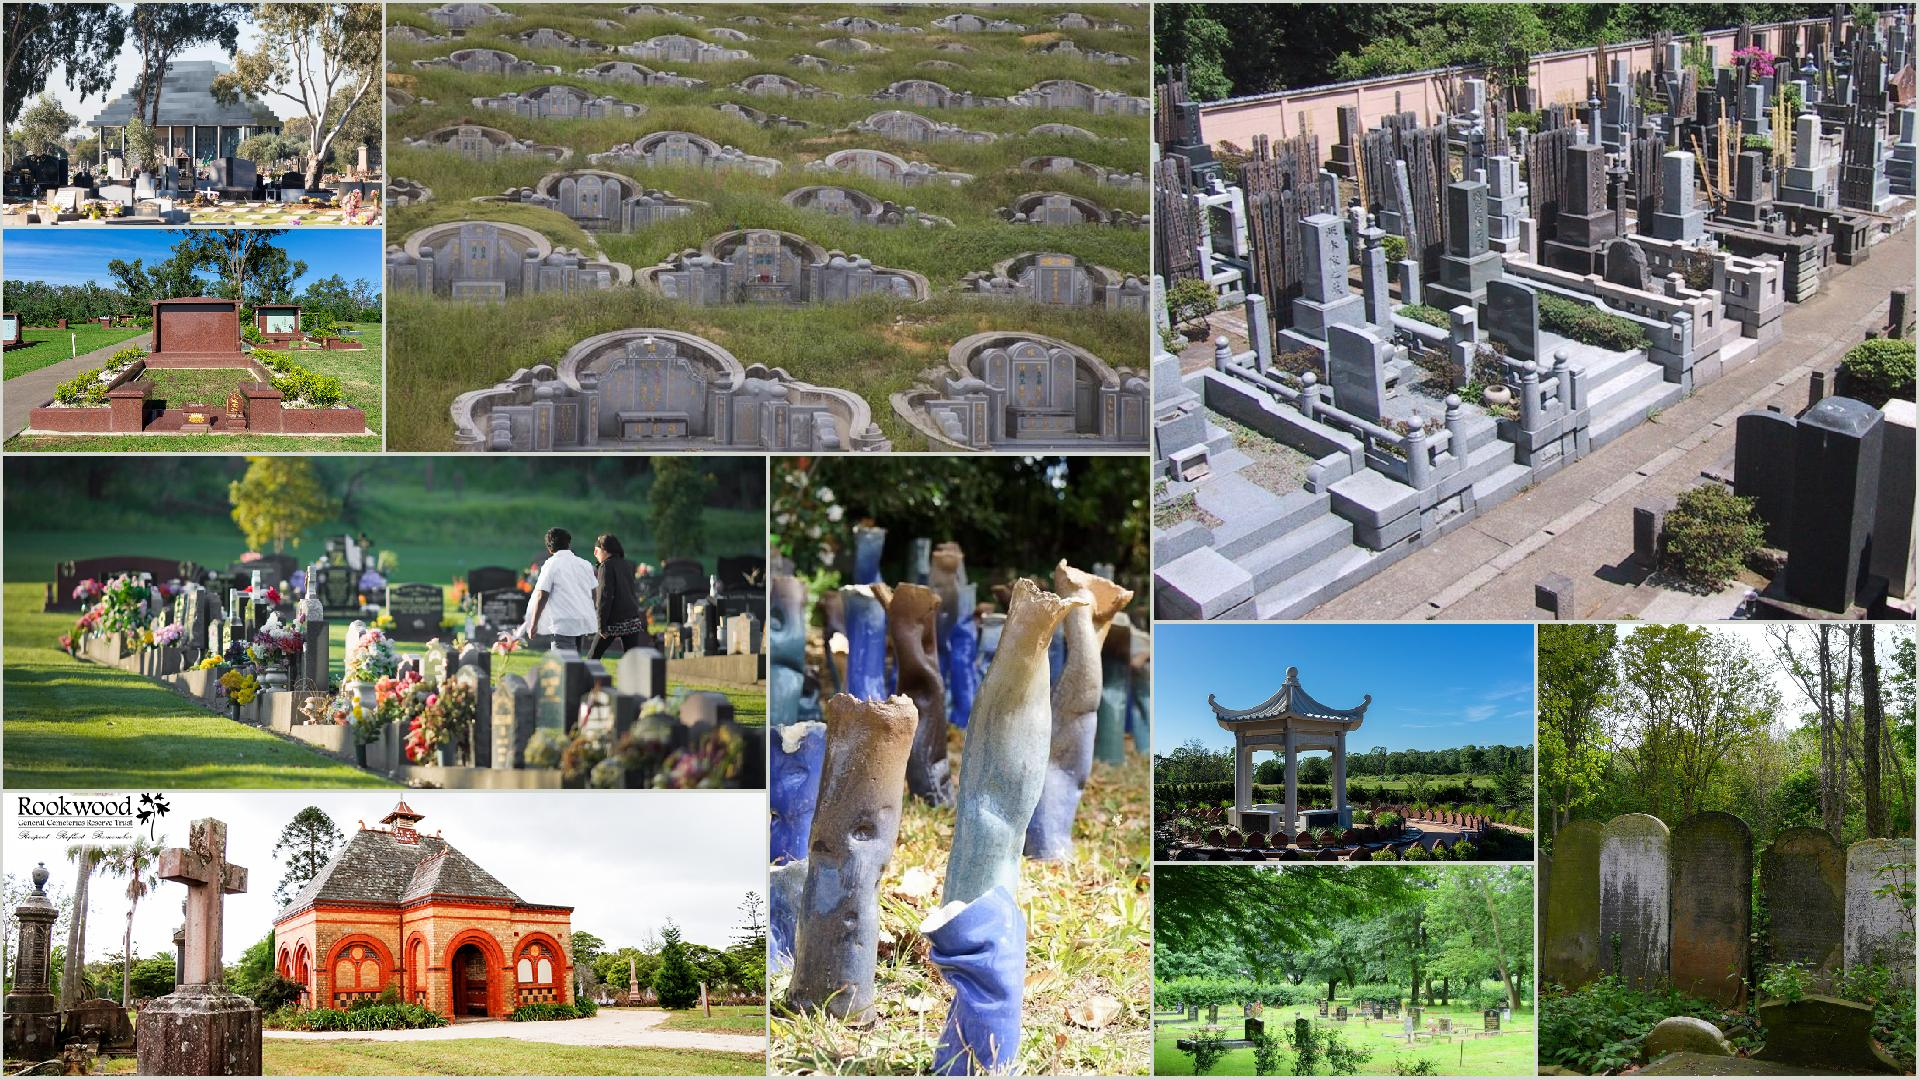 Cemeteries of many cultures